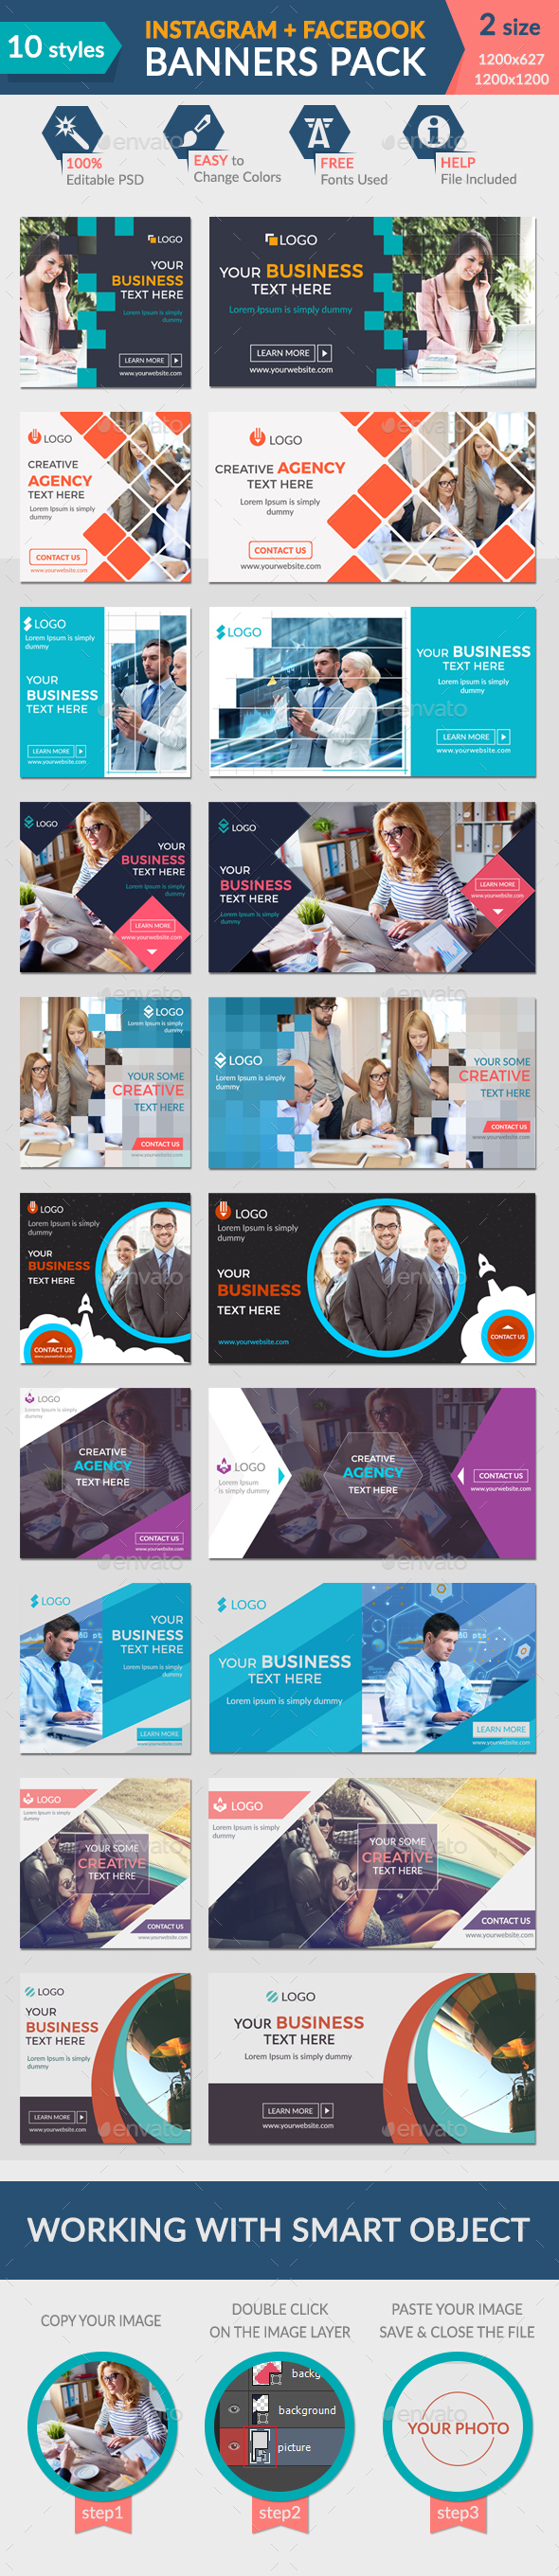 Facebook + Instagram Banners Pack-1 - Banners & Ads Web Elements